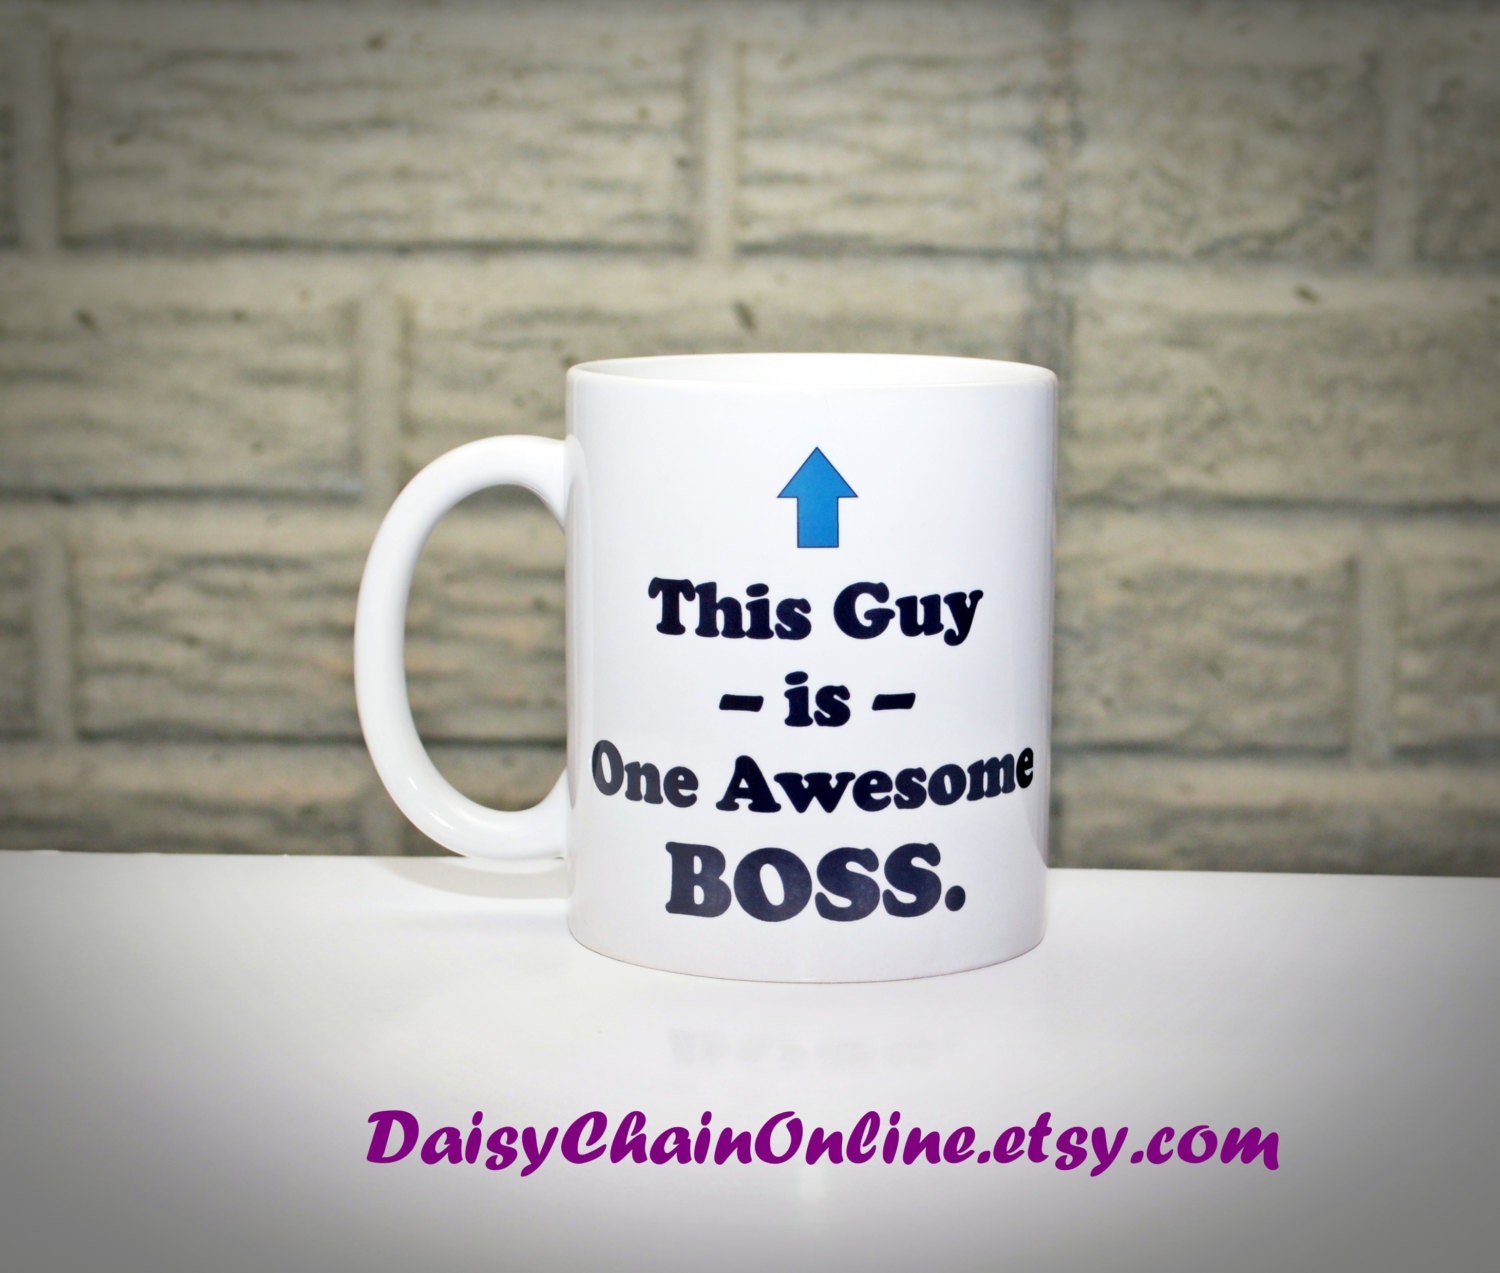 Gift for Boss Funny Coffee Mug for Boss Christmas Gift Gift | Etsy